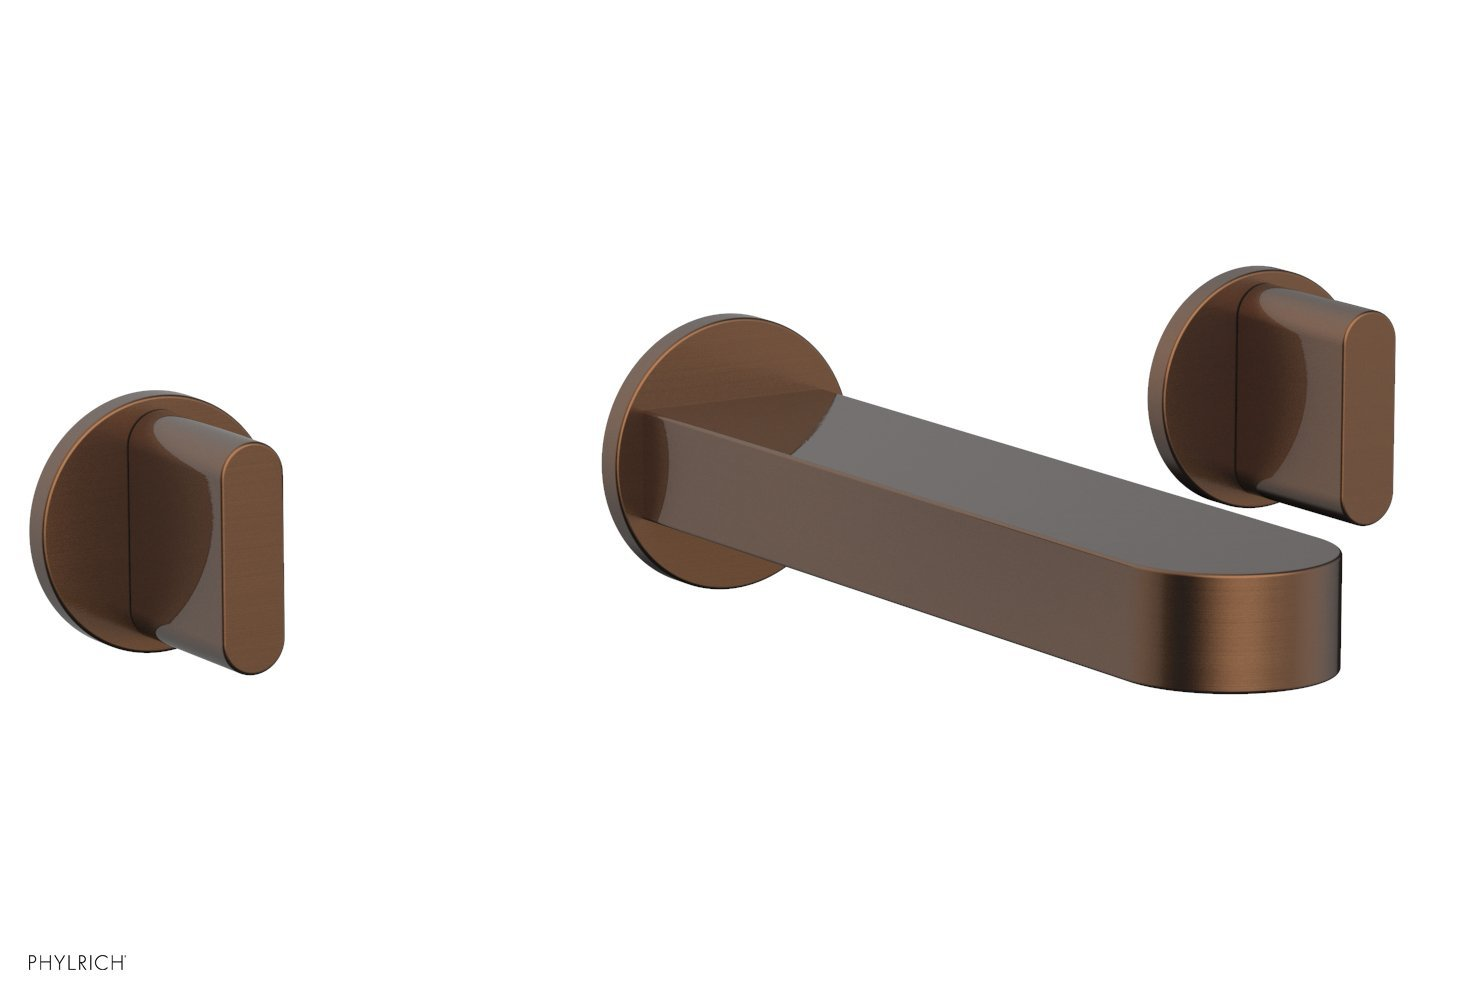 Phylrich 183-11-05A ROND Wall Lavatory Set - Blade Handles - Antique Copper